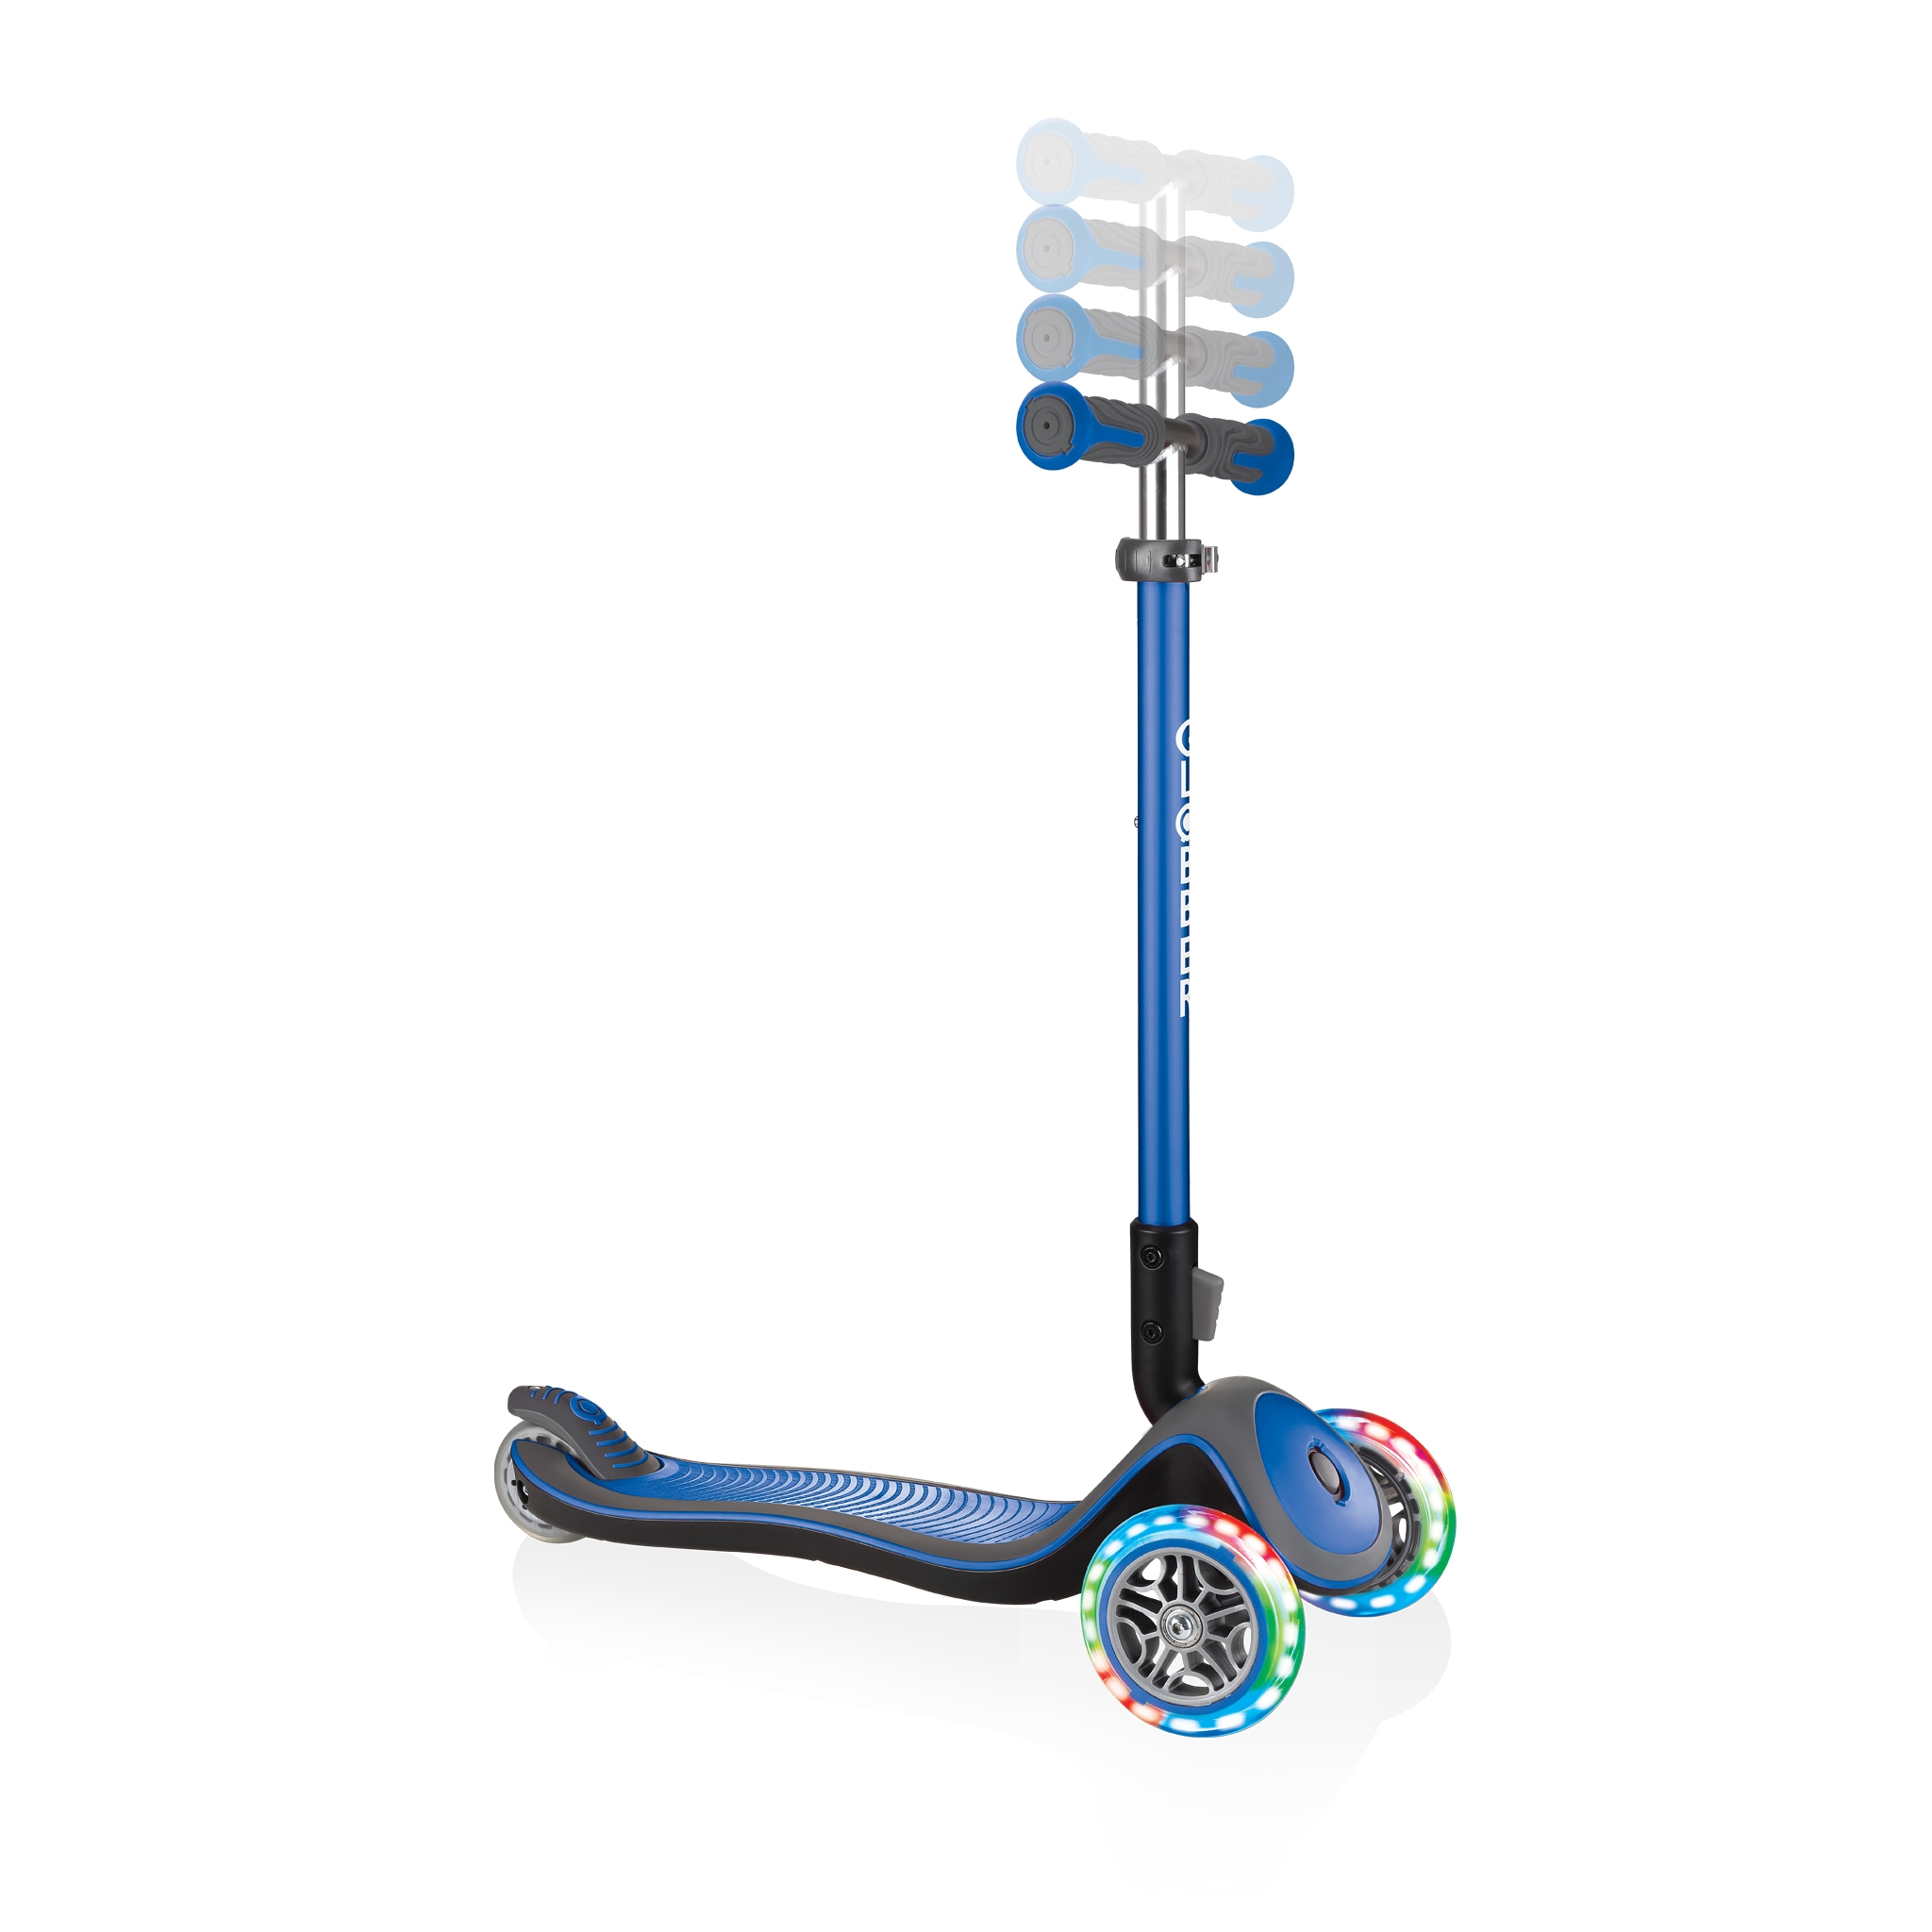 Globber-ELITE-DELUXE-LIGHTS-3-wheel-adjustable-scooter-for-kids-with-light-up-scooter-wheels-navy-blue